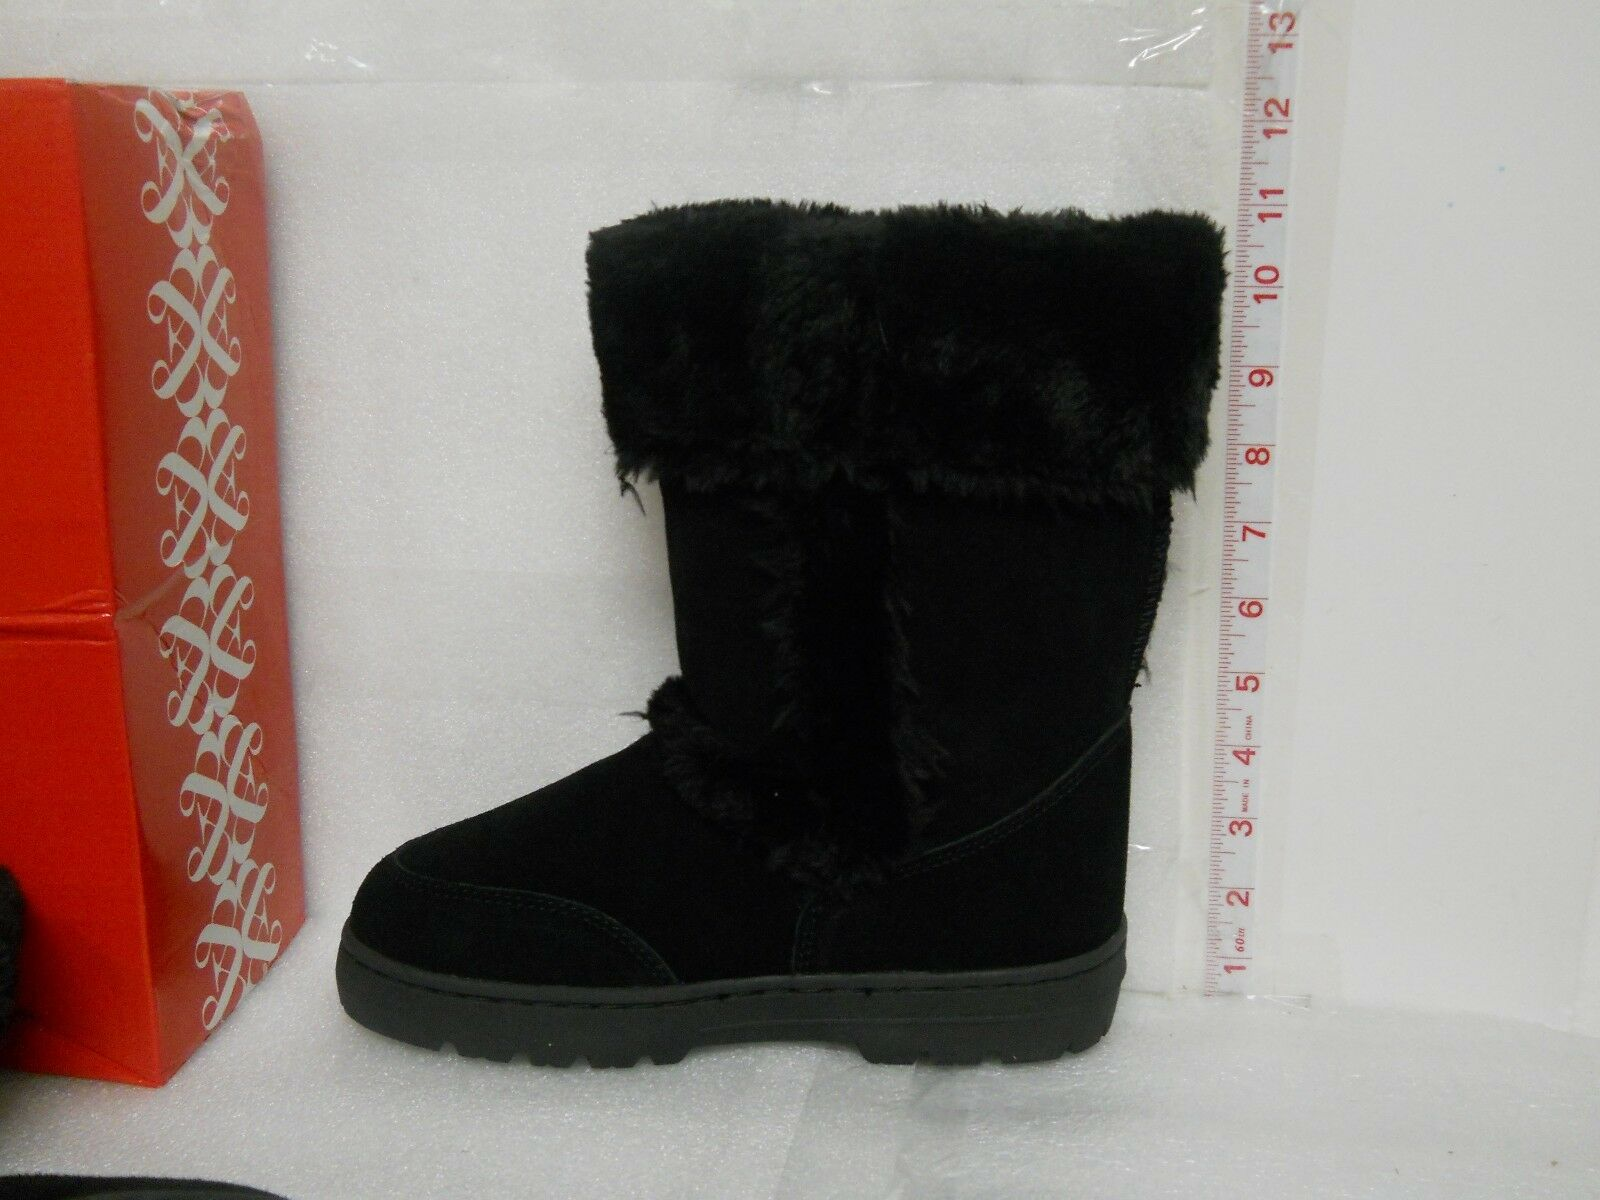 Style & Co Co Co New Womens Witty Black Leather Boots 7 M shoes NWB 4c590f